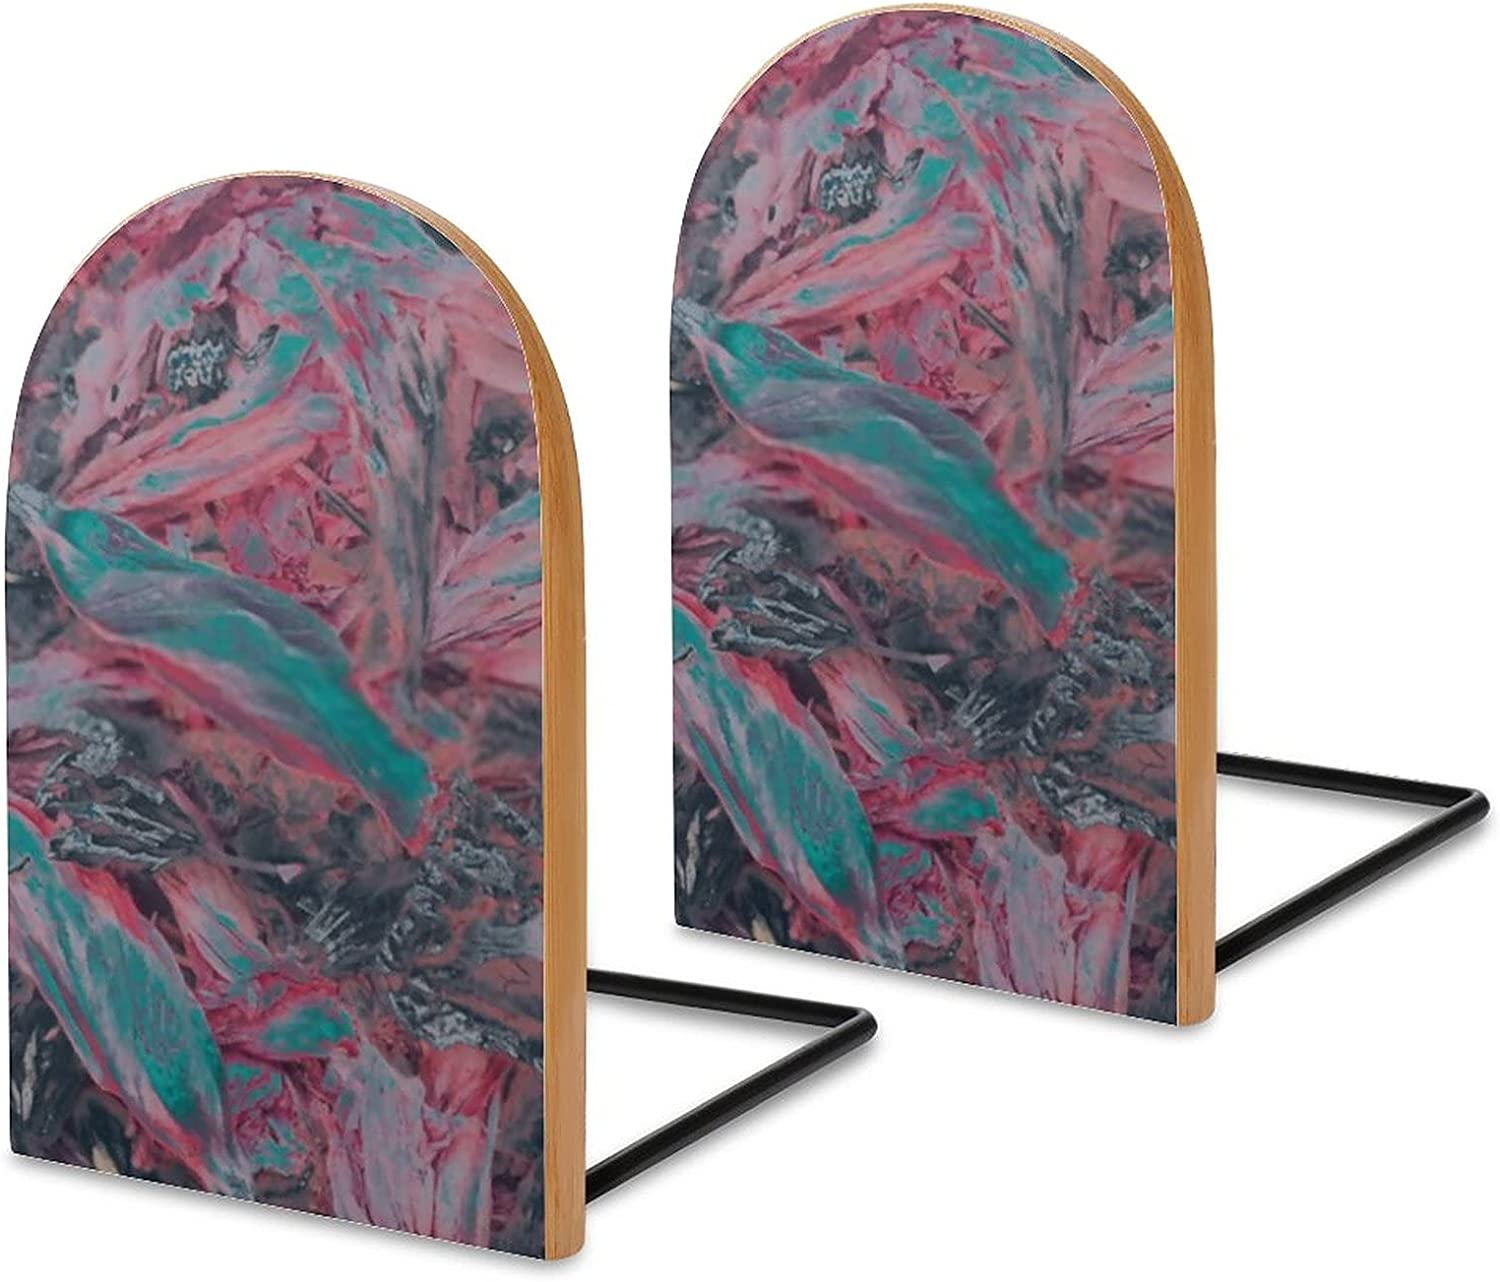 New products, world's highest quality popular! Wood Bookends Max 48% OFF Pack of 2 Pink Forest for Book Stand Non Home Skid